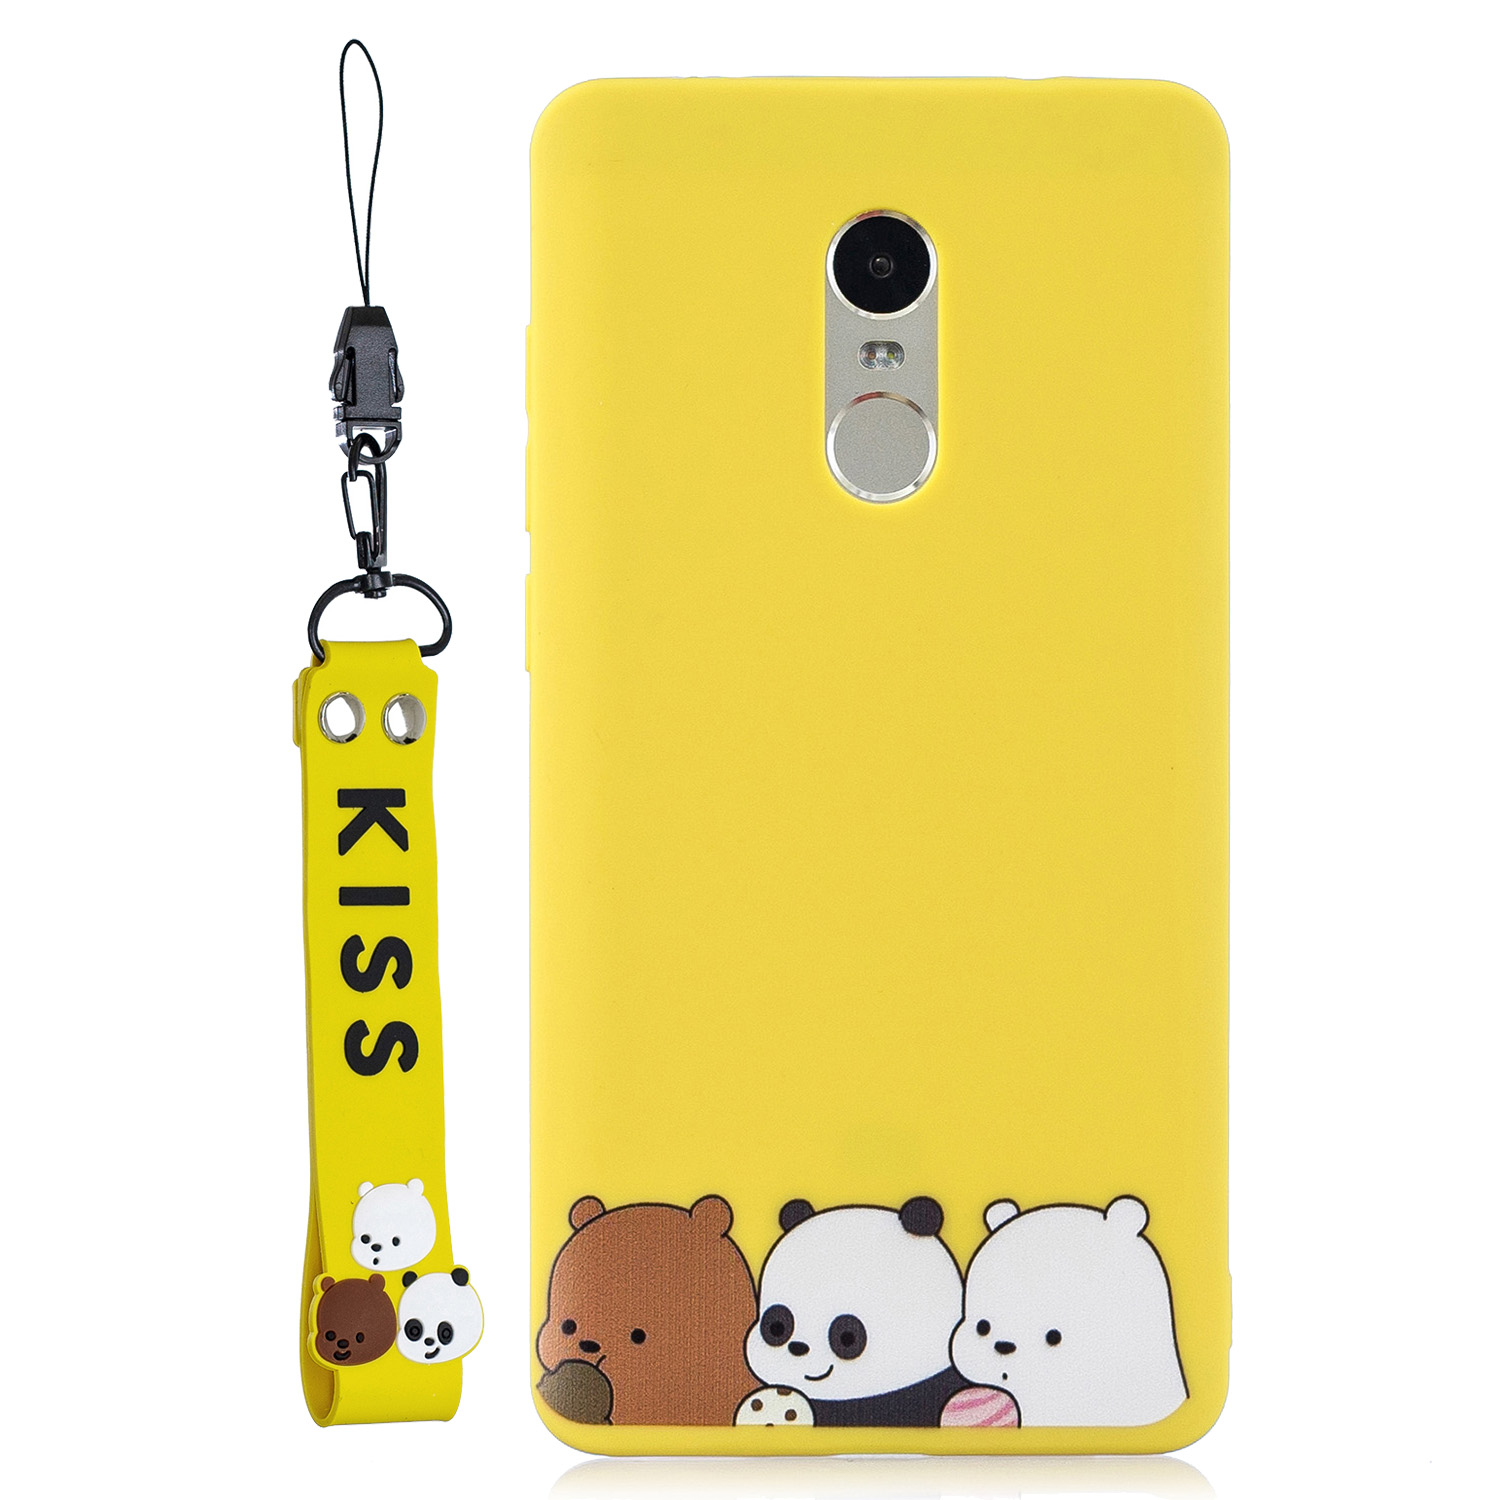 For Redmi note 4X/NOTE 4 Cartoon Lovely Coloured Painted Soft TPU Back Cover Non-slip Shockproof Full Protective Case with Lanyard yellow